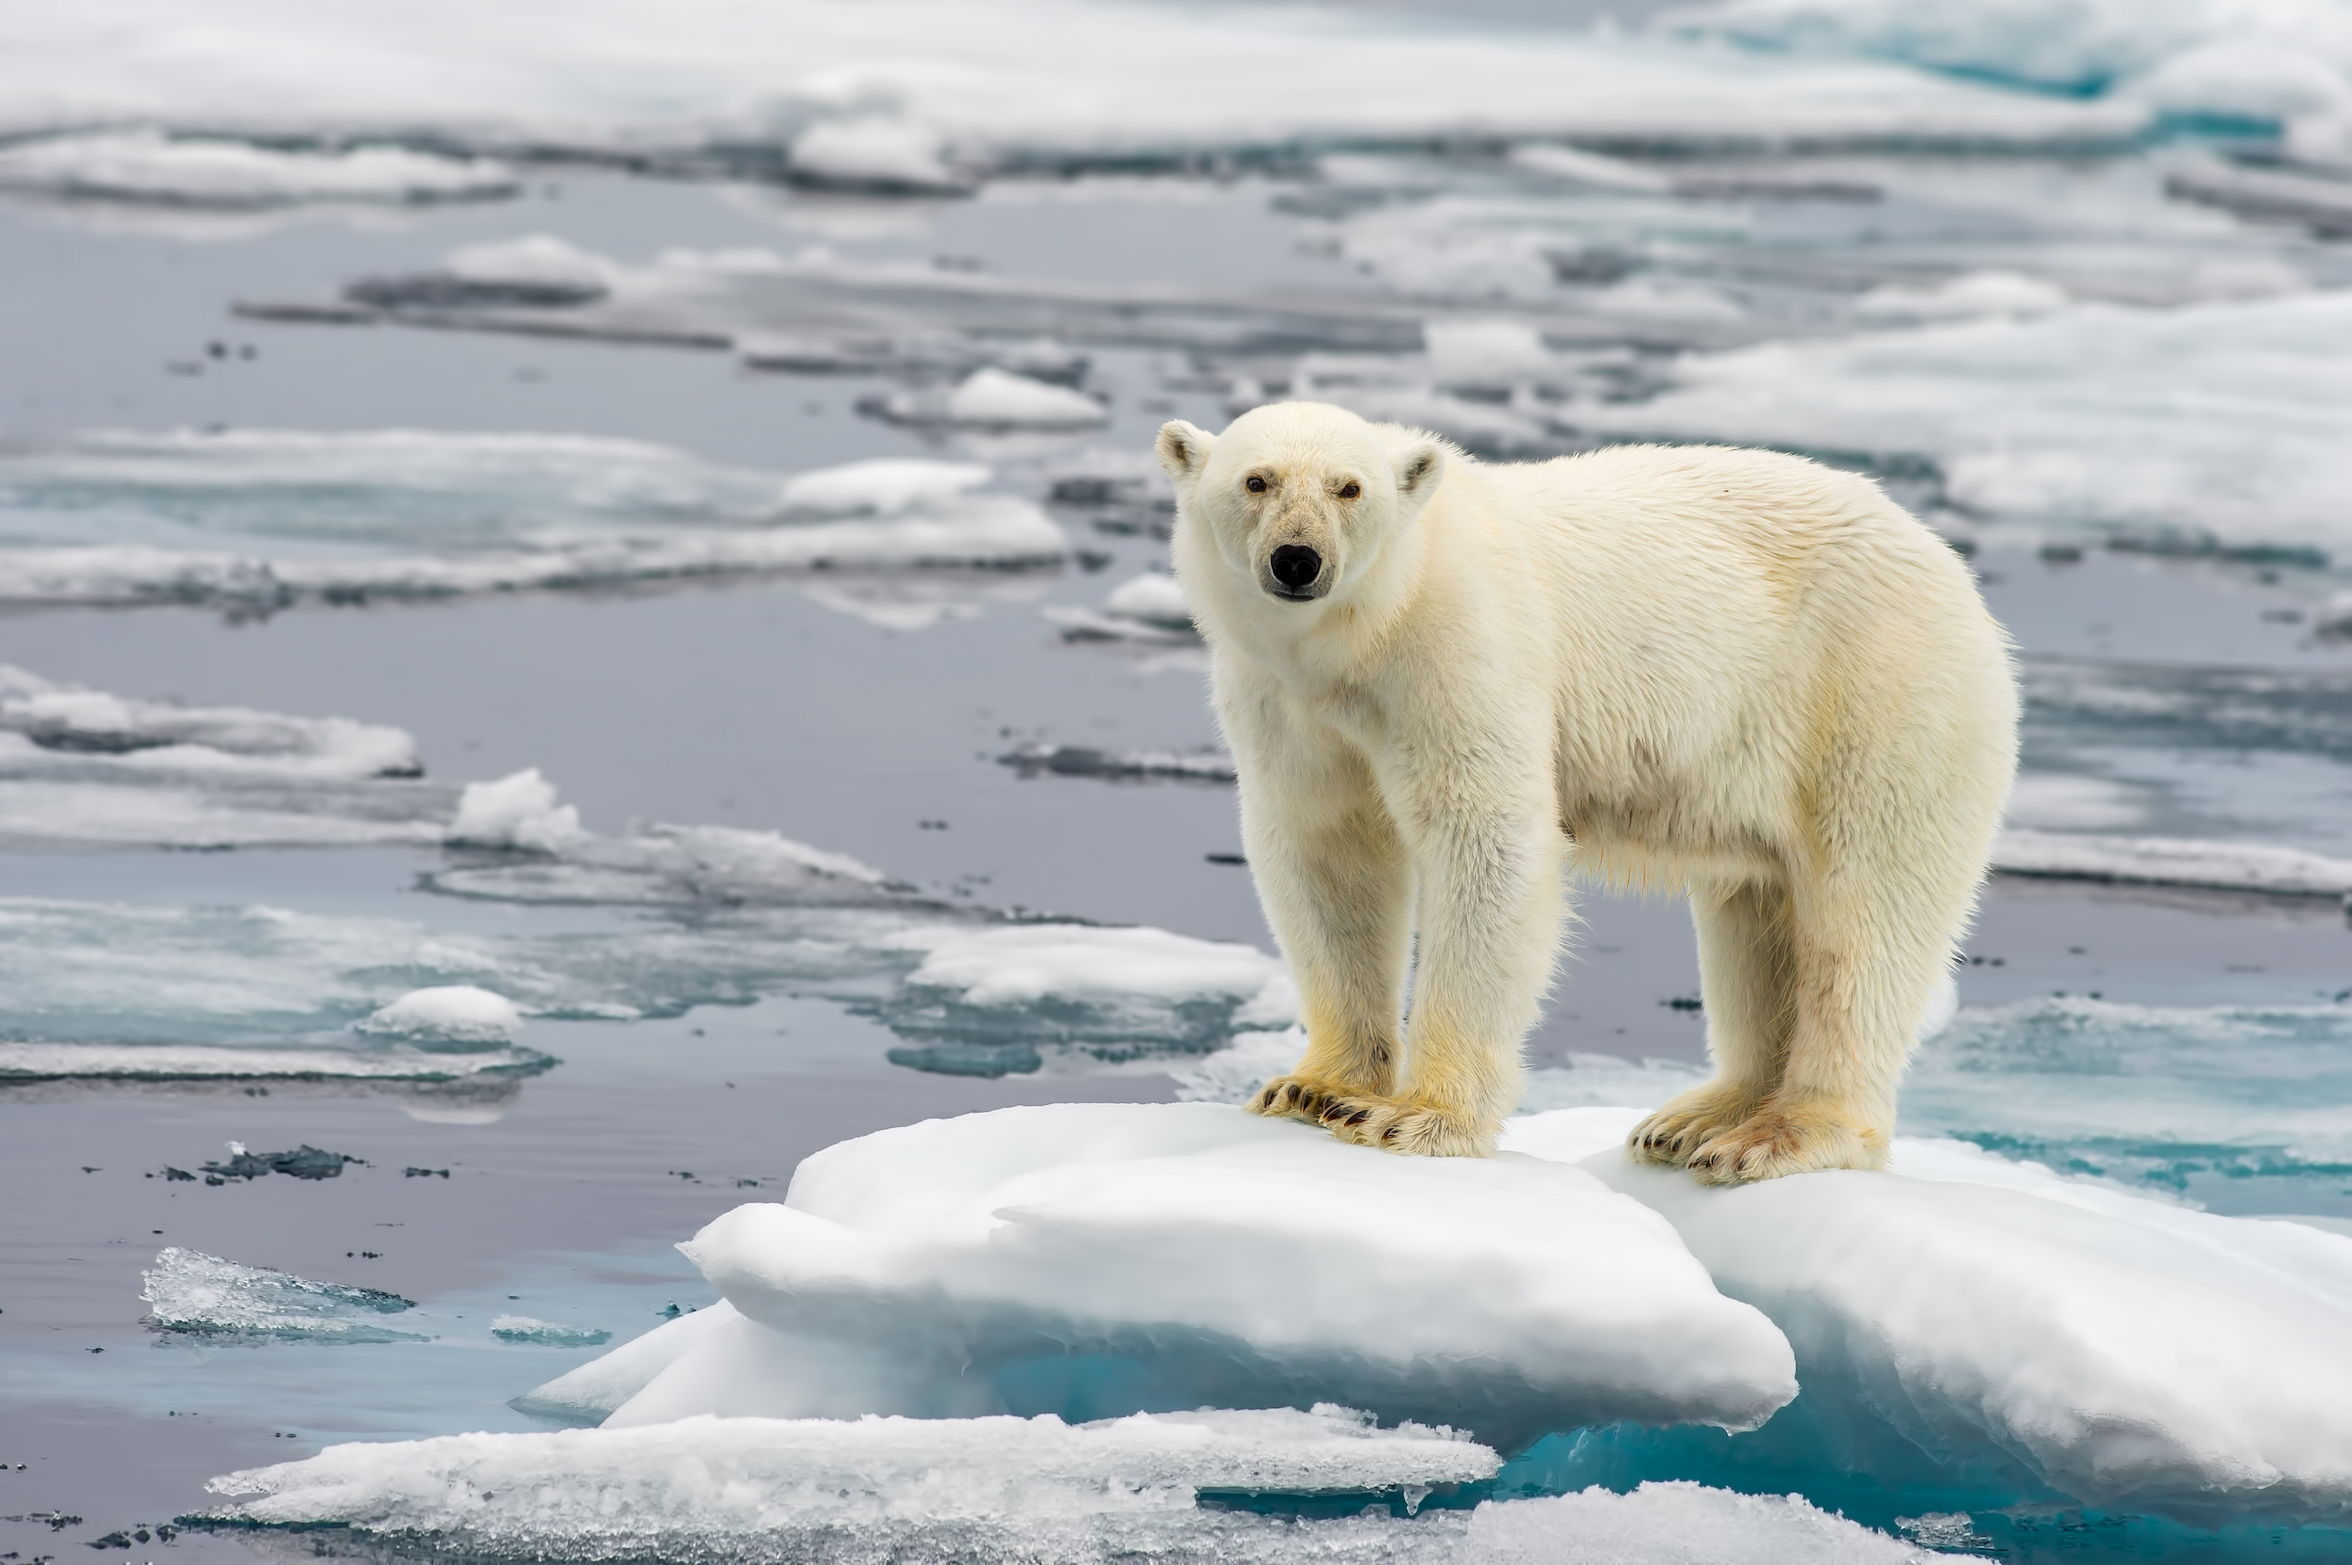 A new study led by the U.S. Geological Survey explored the challenges that the thinning, faster-moving sea ice is creating for polar bears.